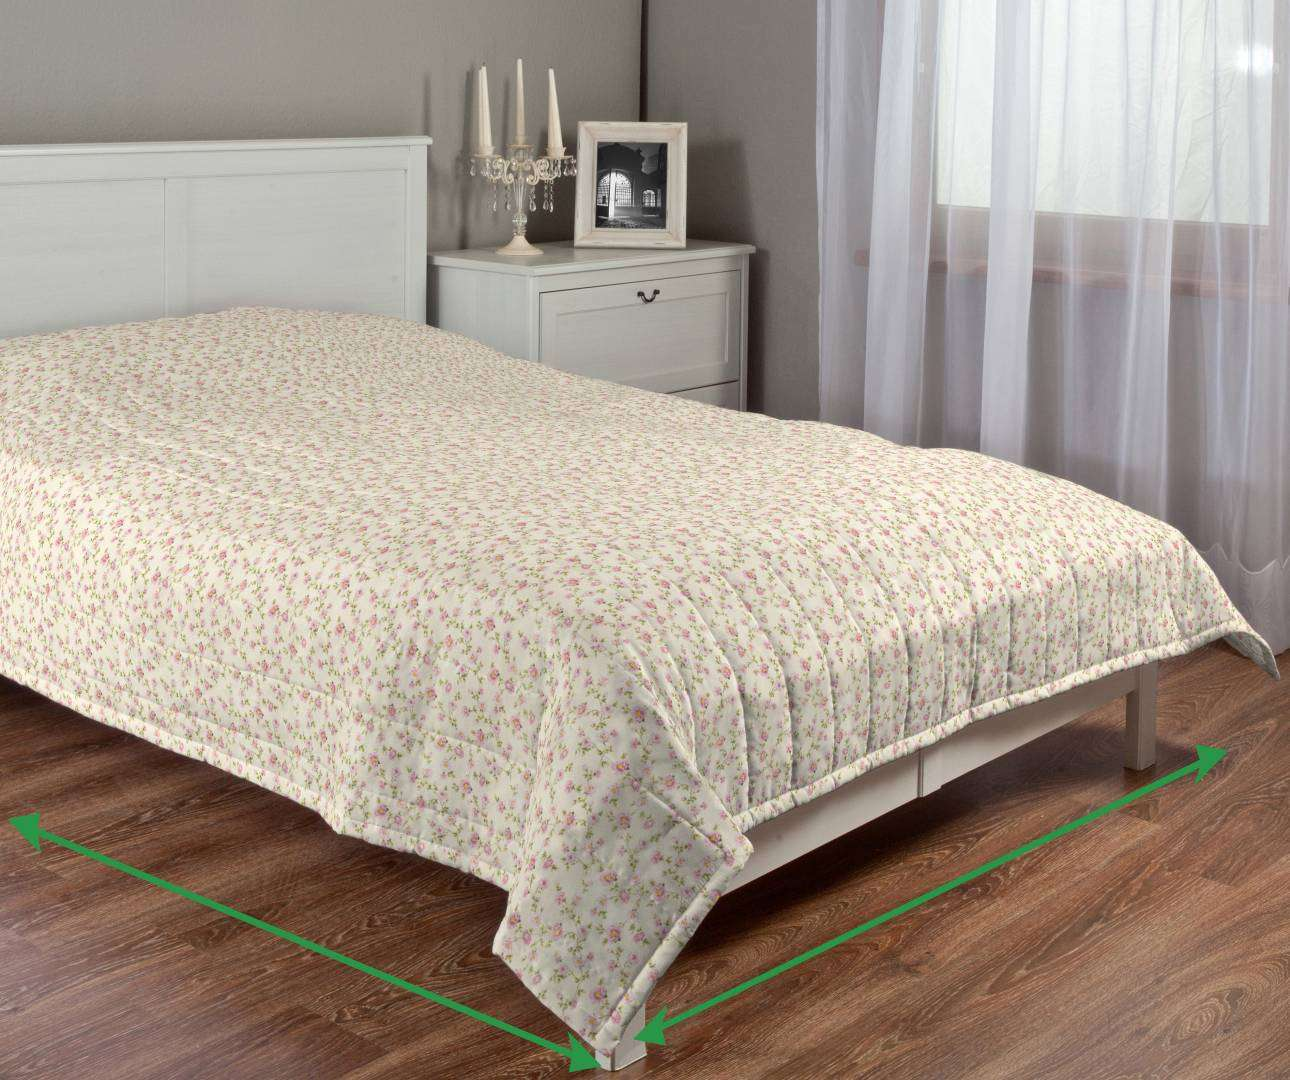 Quilted throw (vertical quilt pattern) in collection Ashley, fabric: 137-45